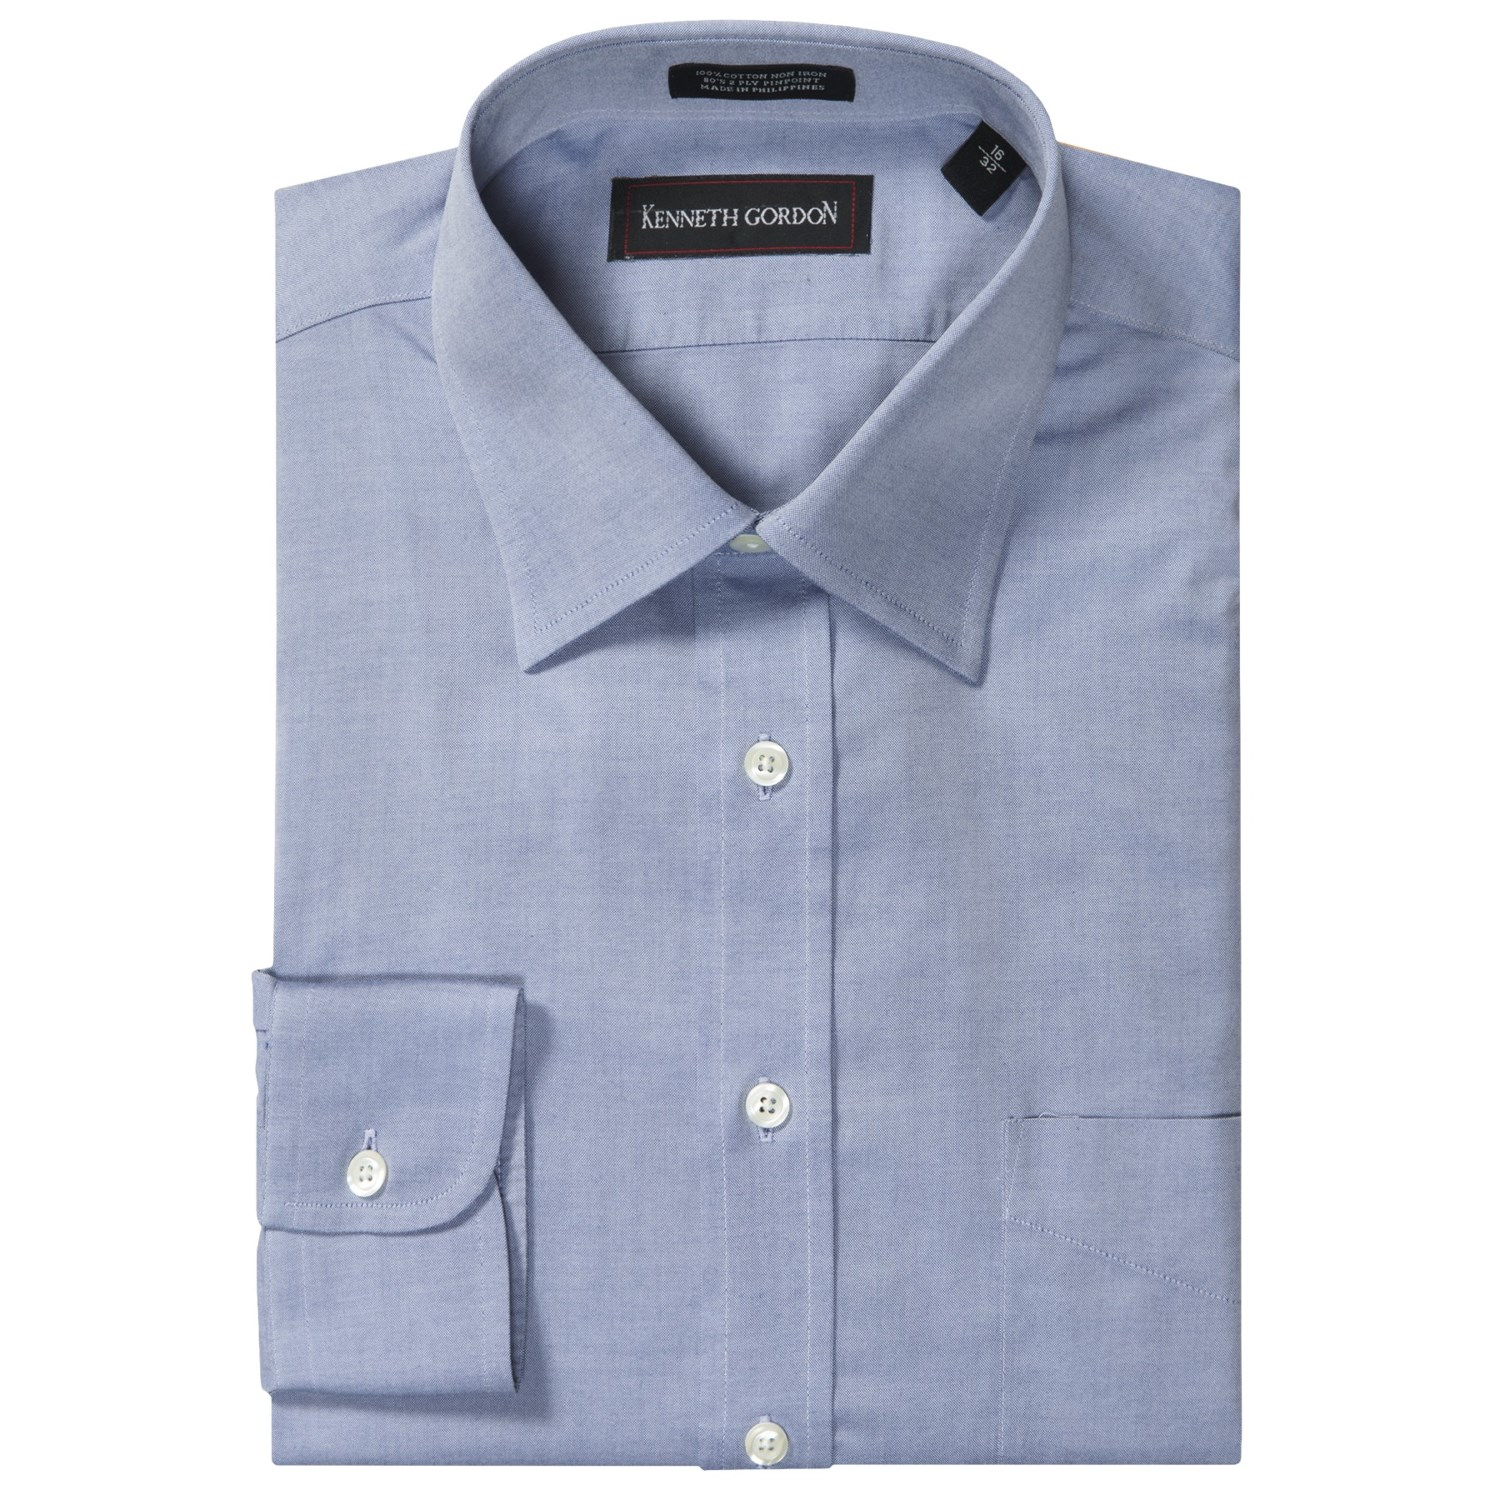 Kenneth gordon no iron dress shirt for men 9176k save 61 for Mens no iron dress shirts